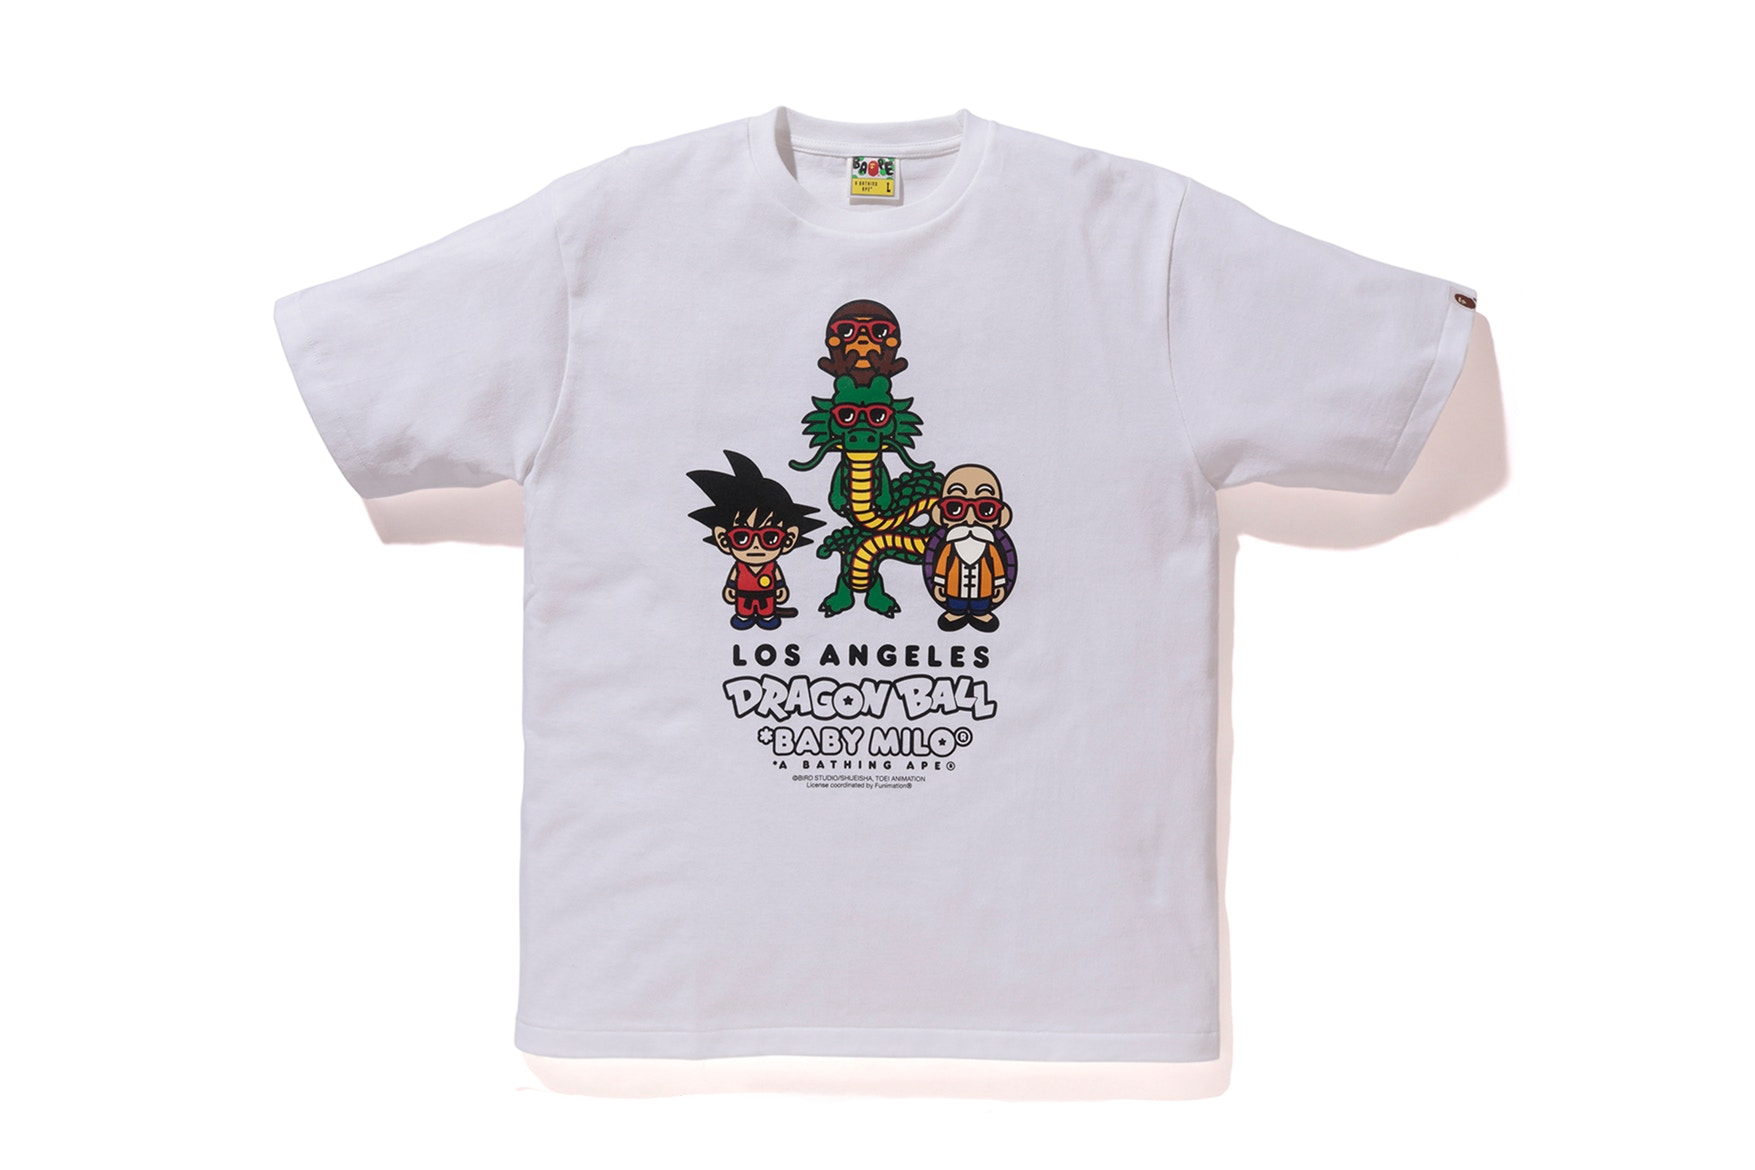 bape-a-bathing-ape-dragon-ball-z-los-angeles-exclusive-collection-004